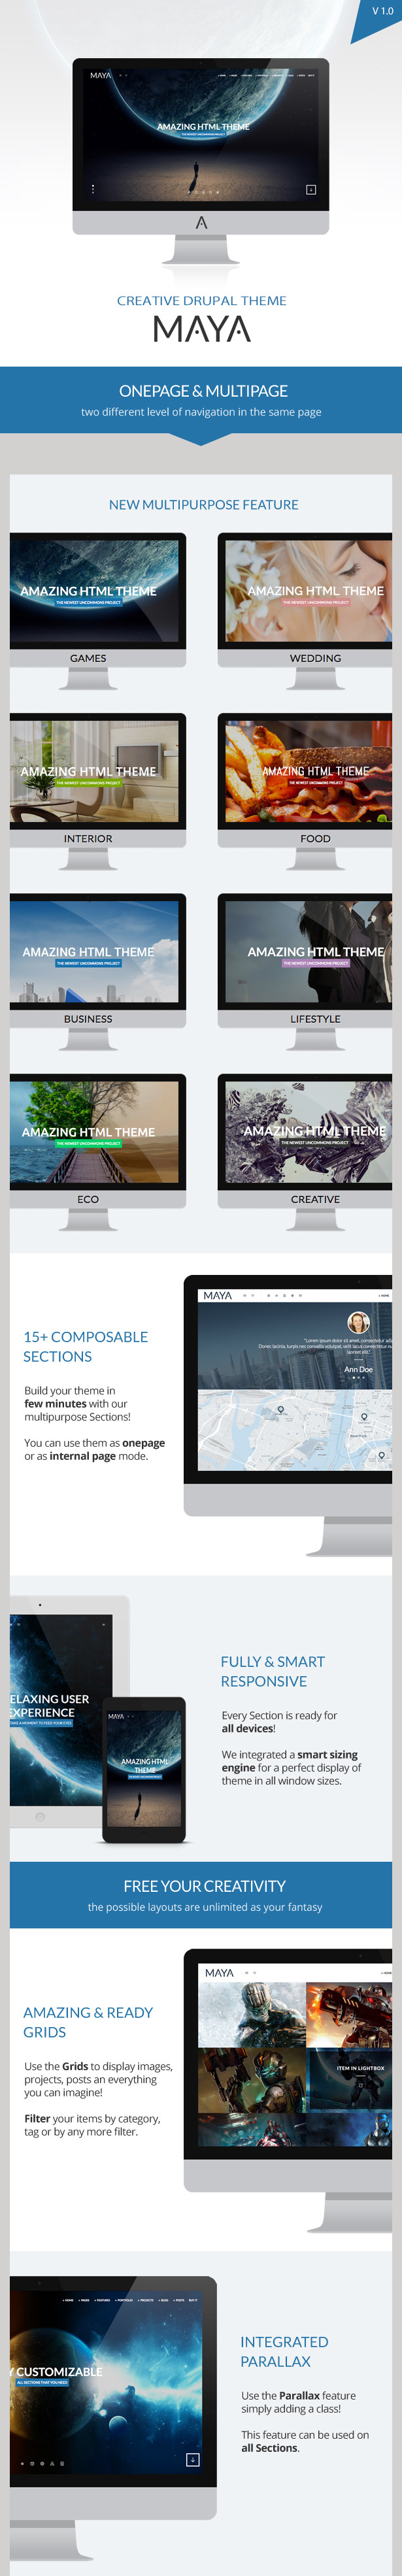 Maya - Smart & Powerful Drupal Theme